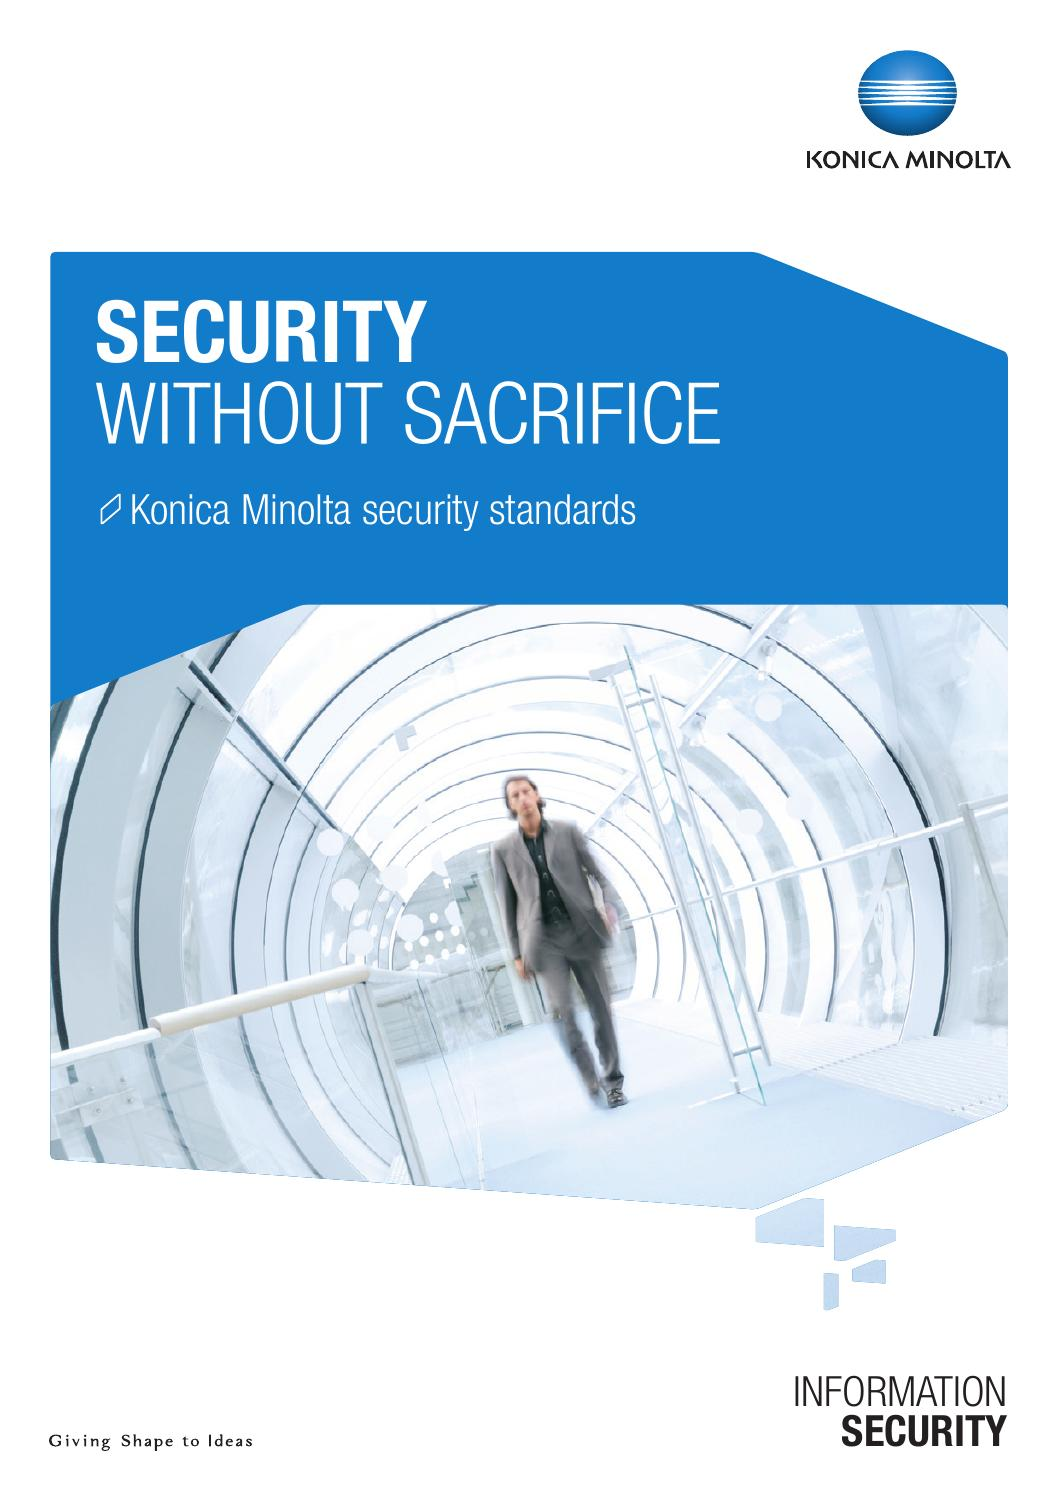 Security brochure 2 by Konica Minolta Business Solutions